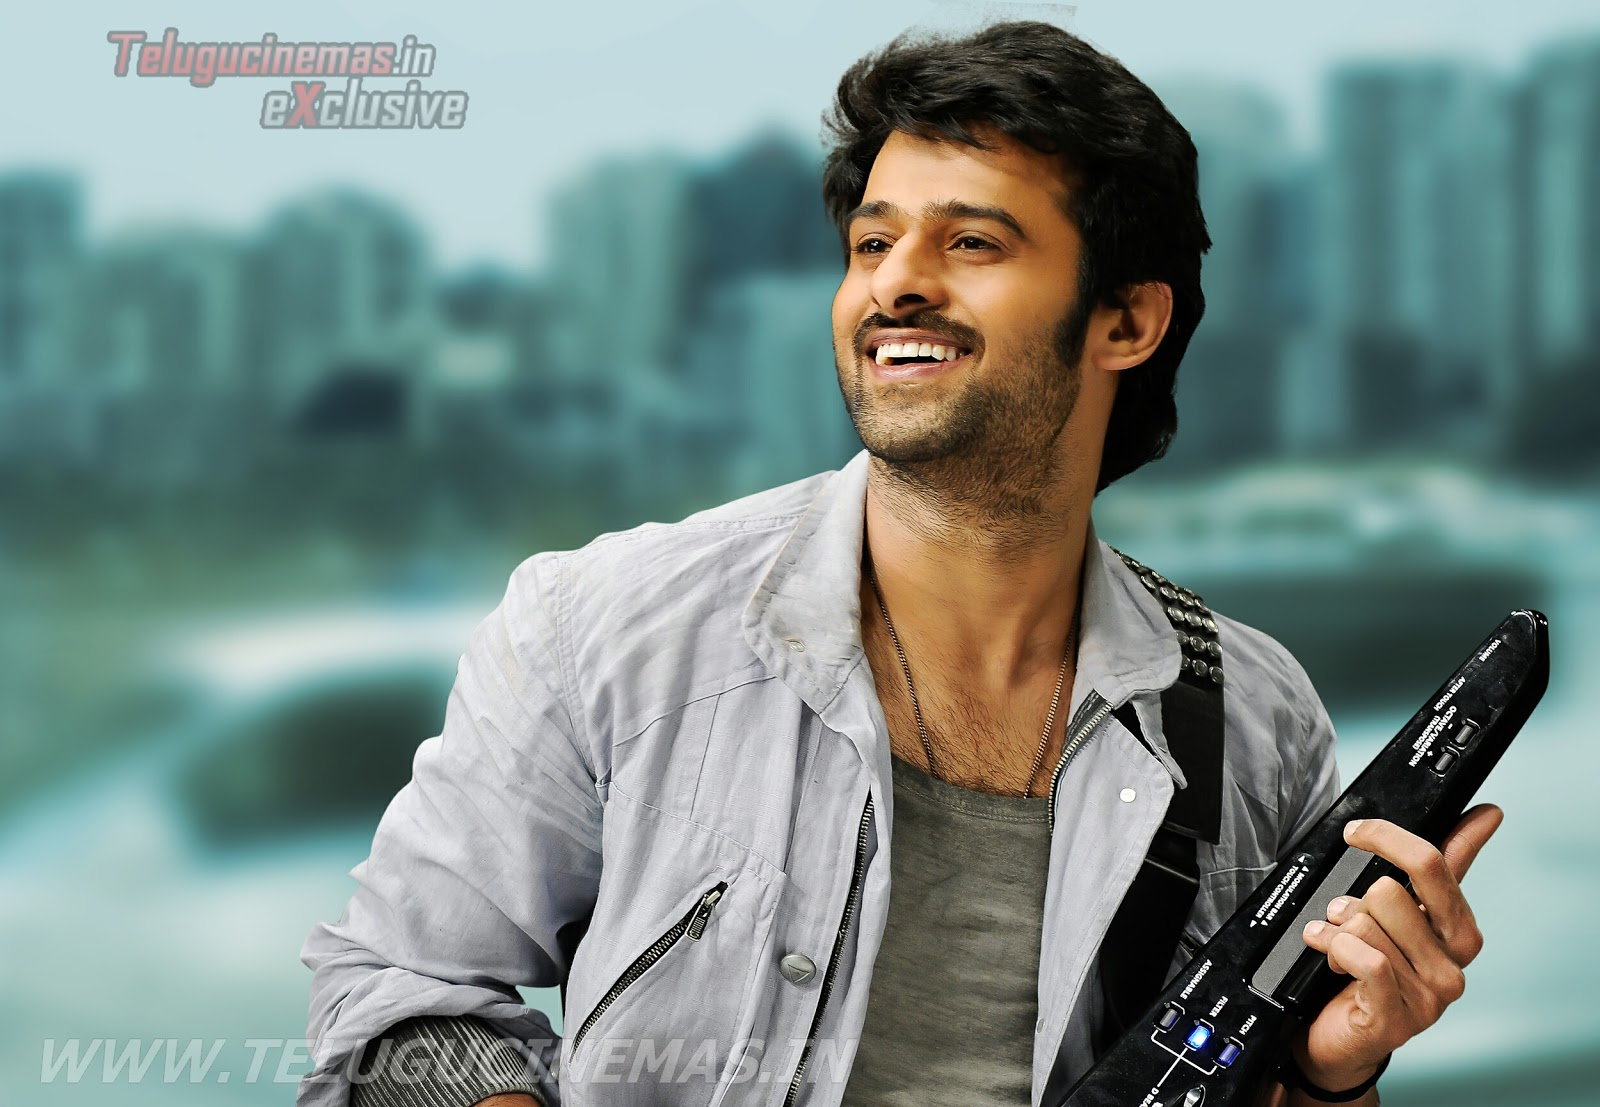 Prabhas Mirchi First Look WallpapersStills TeluguCinemasin